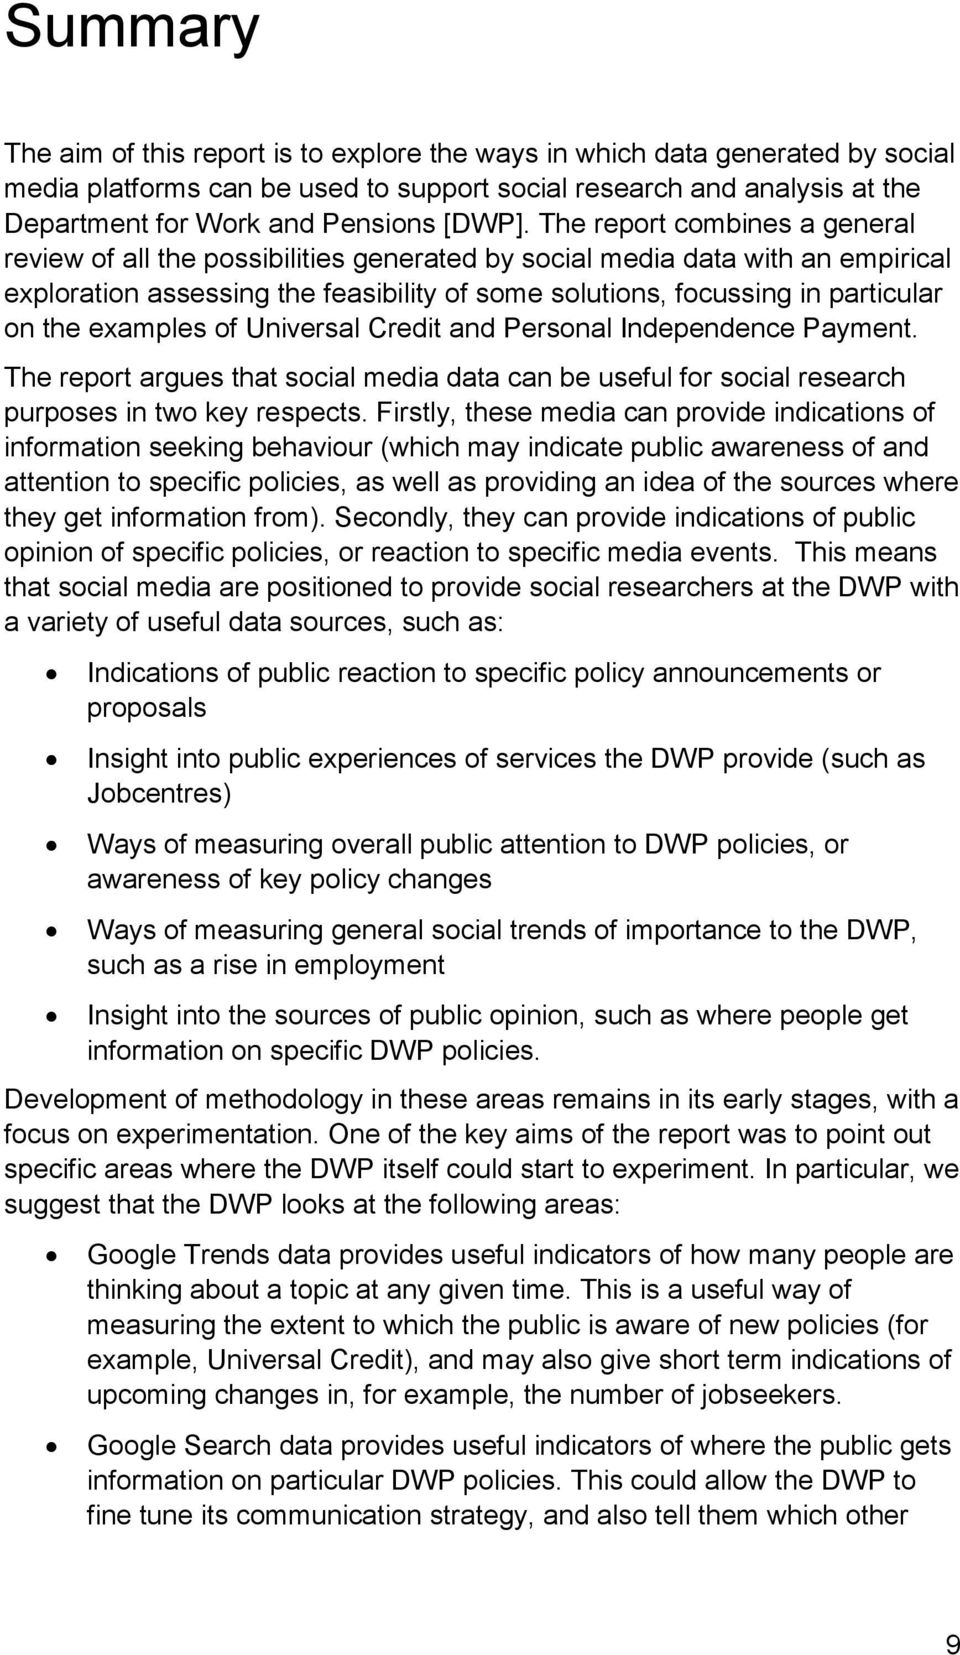 The report combines a general review of all the possibilities generated by social media data with an empirical exploration assessing the feasibility of some solutions, focussing in particular on the